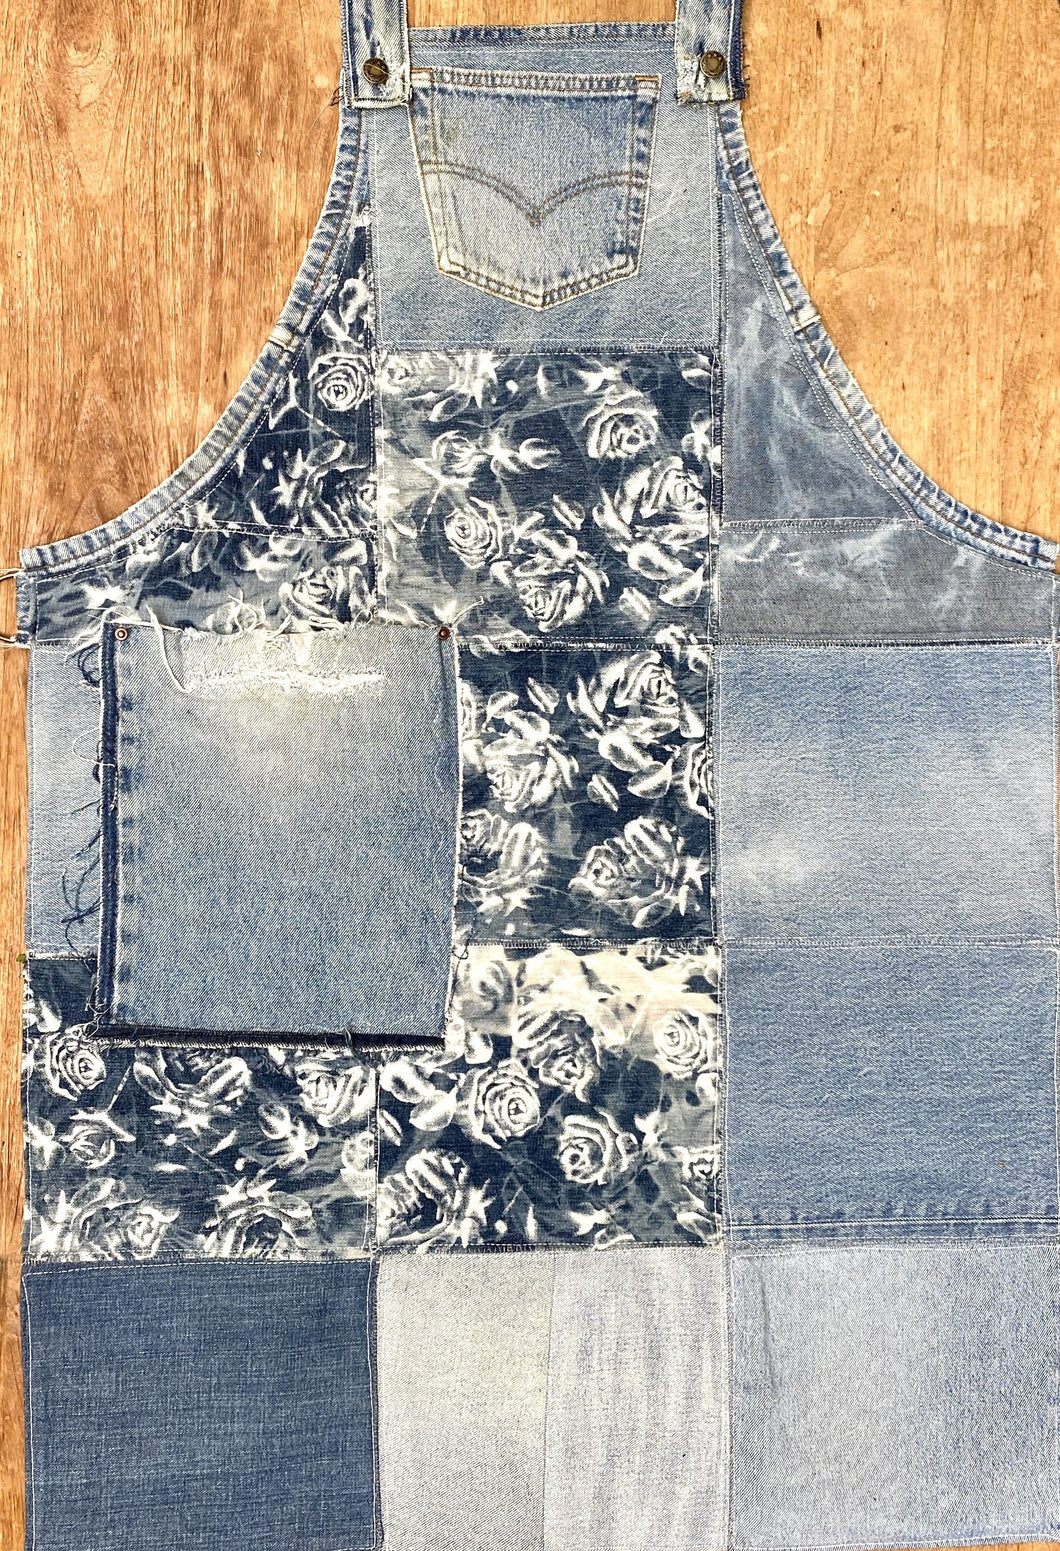 Unique Piece Denim Apron with recycled Levi's jeans and flowers